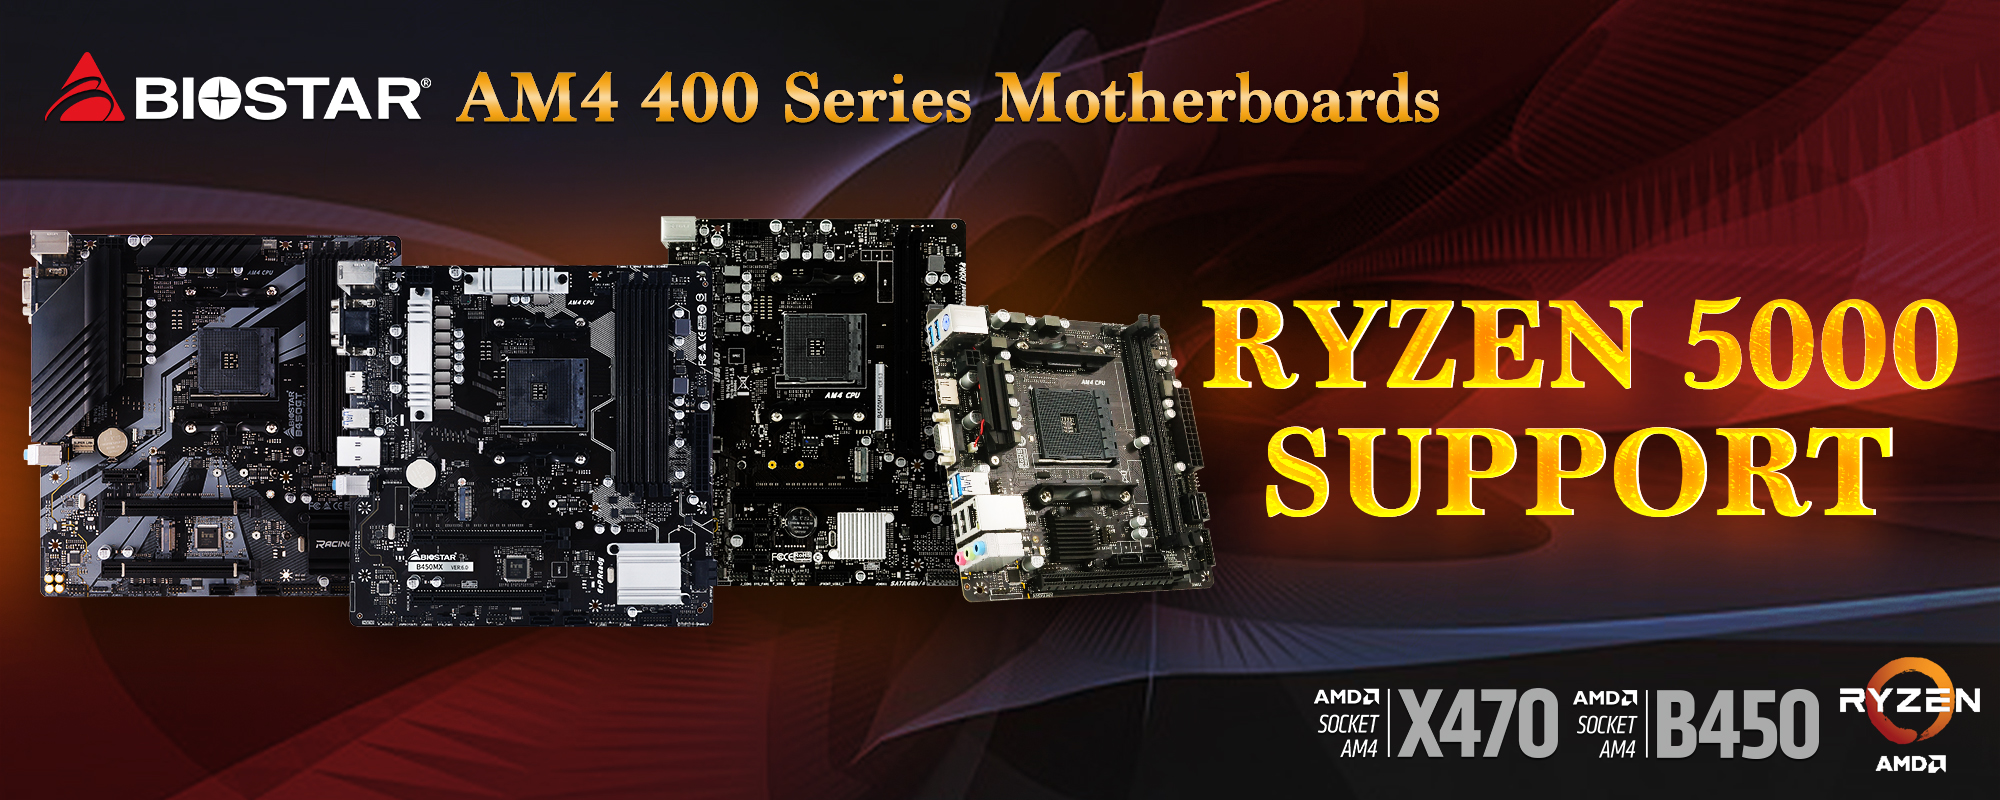 BIOSTAR AM4 400 series motherboards support AMD Ryzen 5000